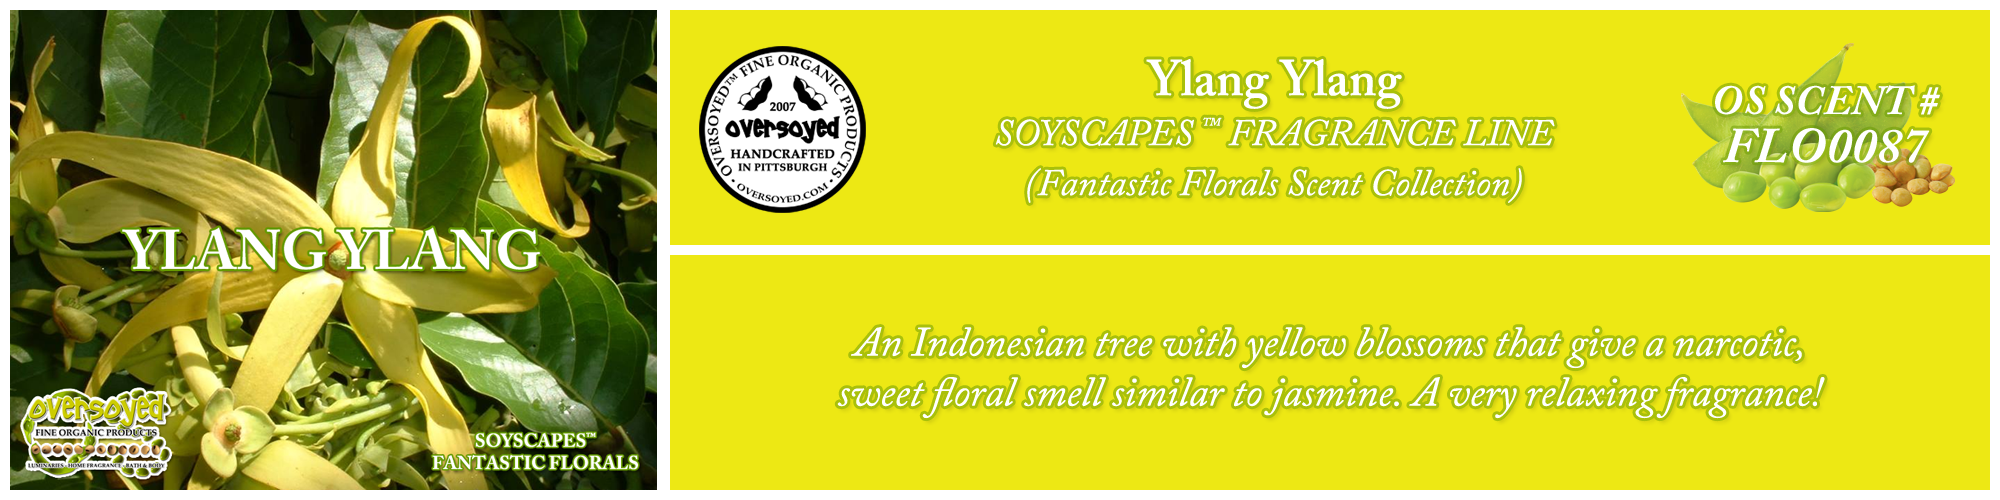 Ylang Ylang Handcrafted Products Collection